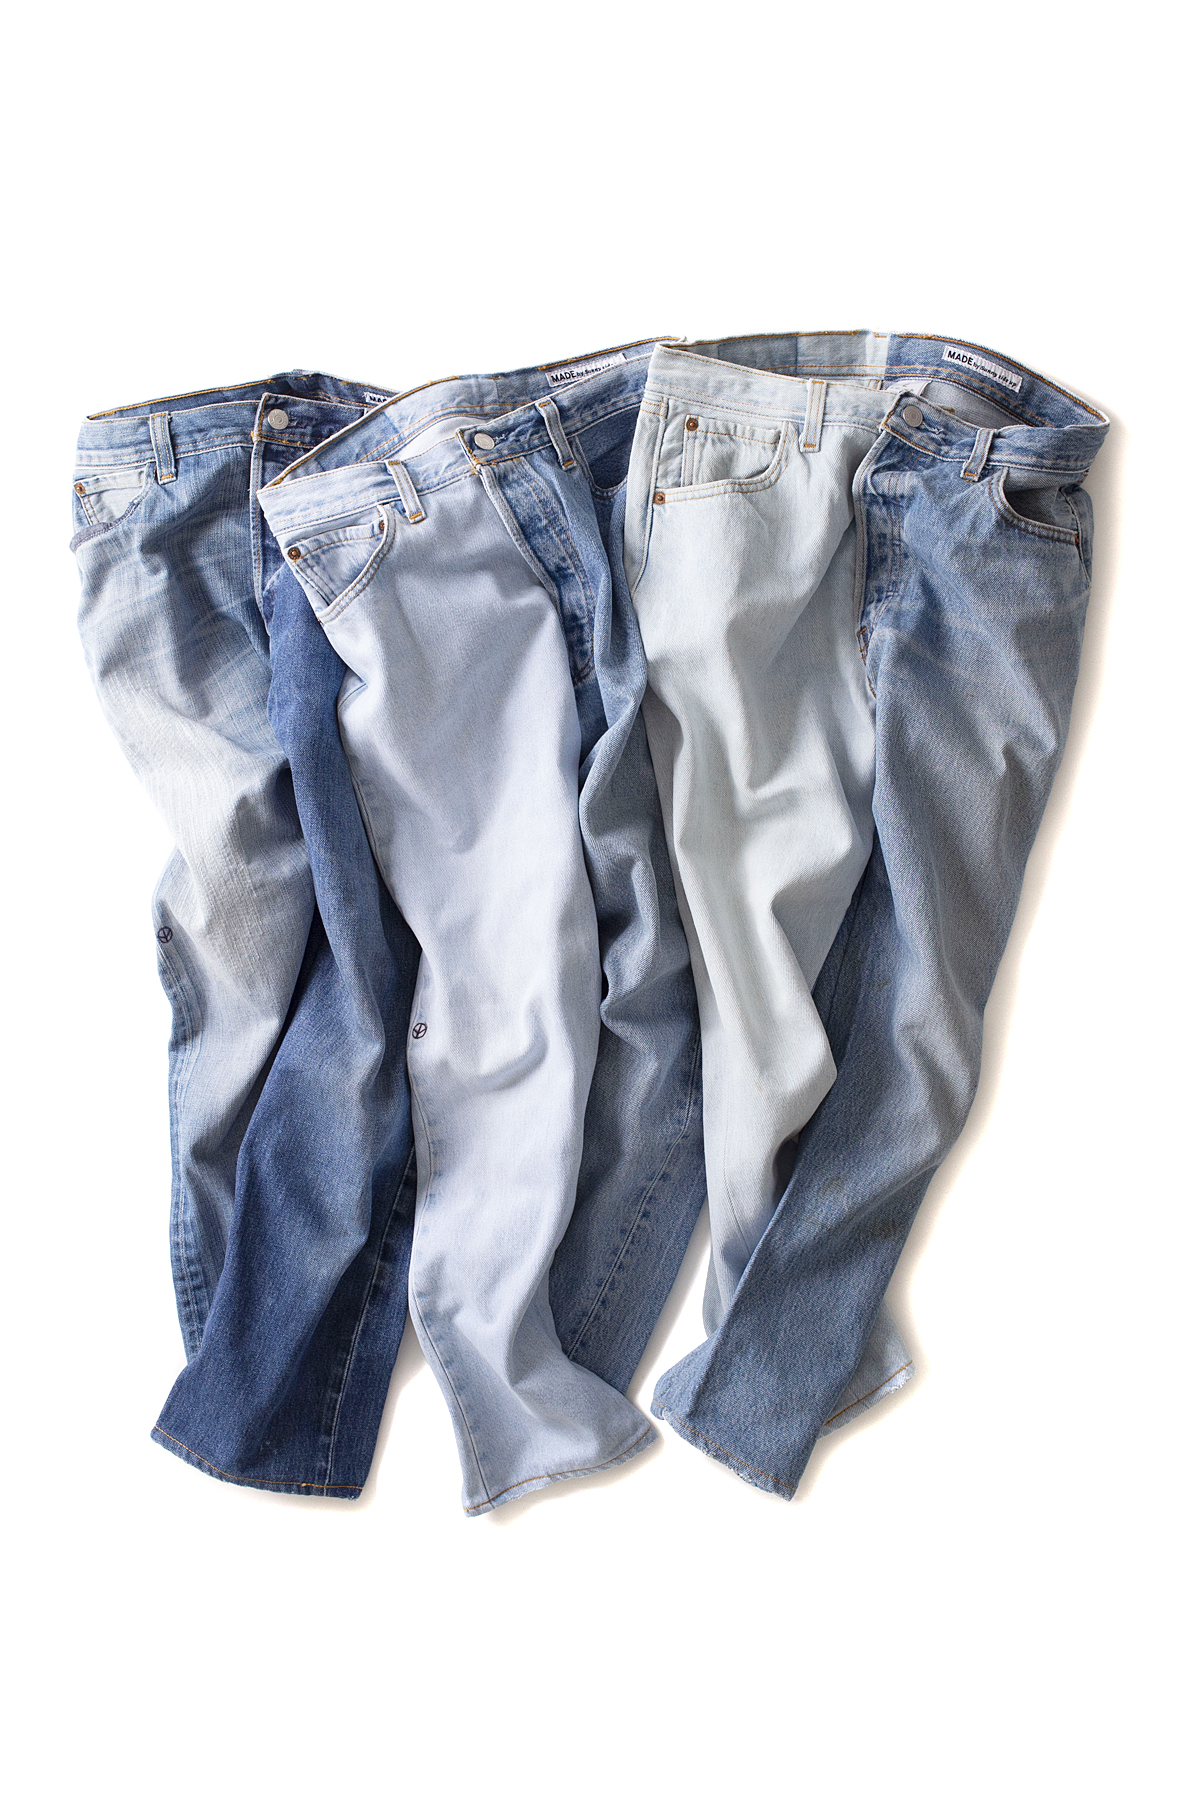 MADE by Sunny side up : 2 Forl Denim 5P Pants (Blue)